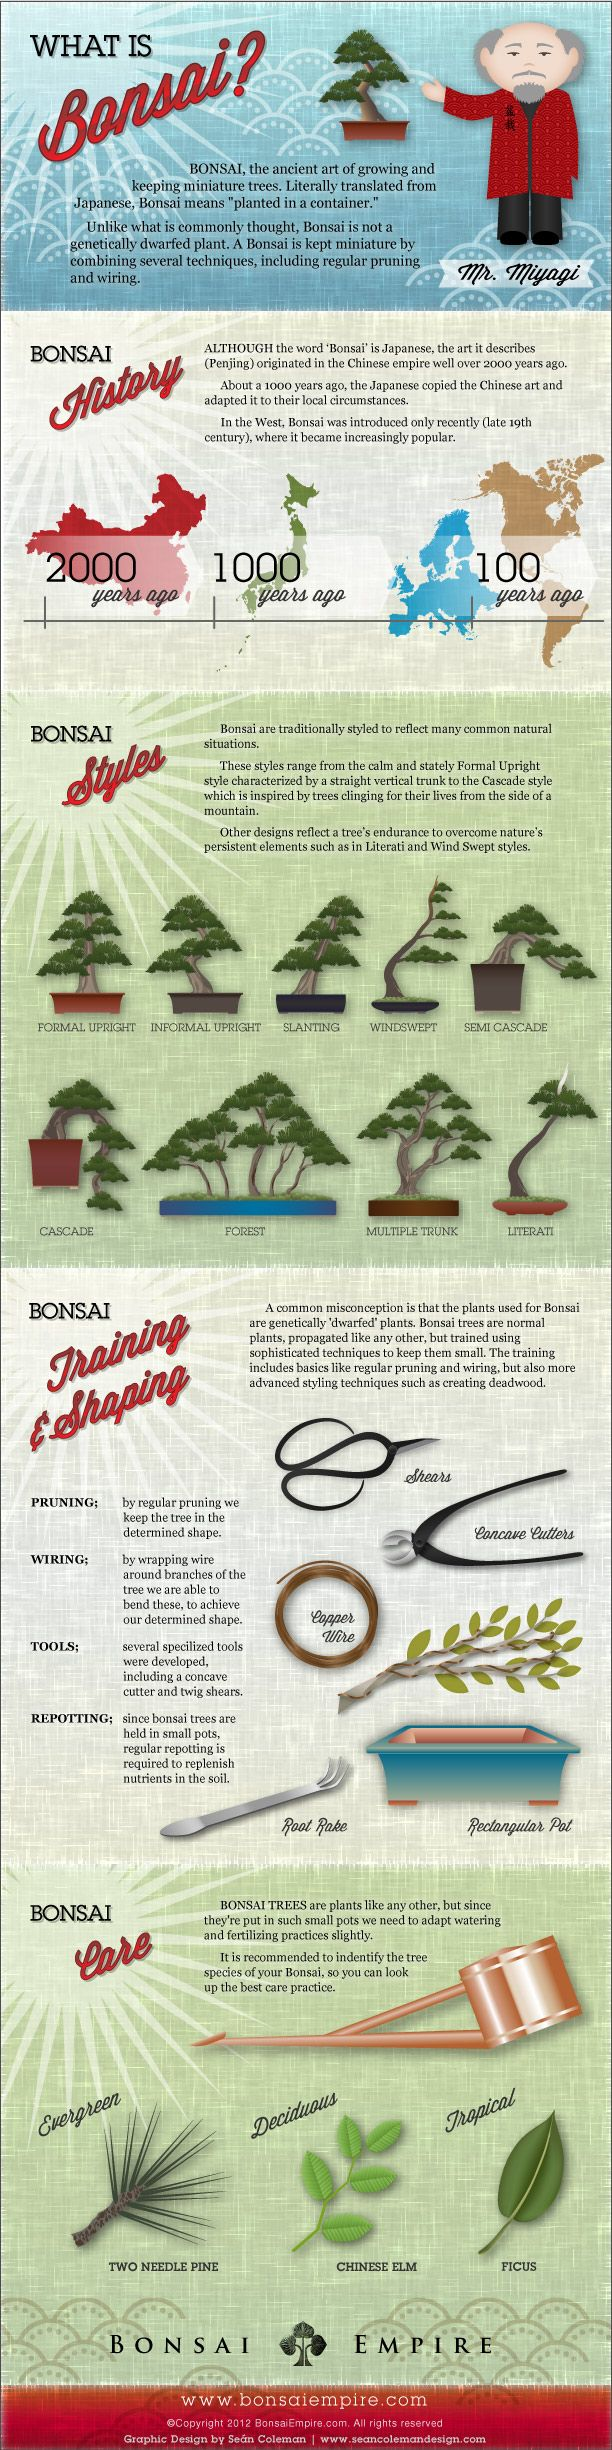 bonsai inforgraphic by Sean Coleman for Bonsai Empire a great introduction to the plants, tools, and methods used in bonsai artistry.